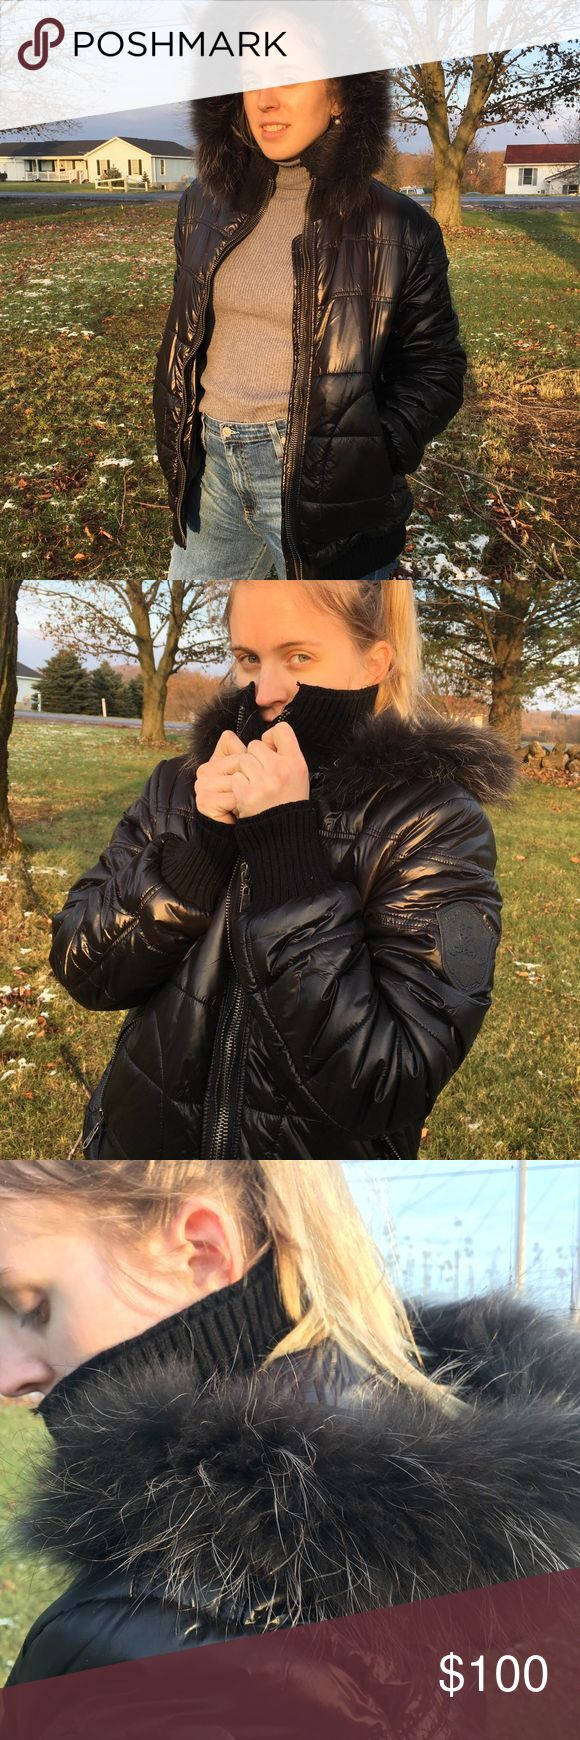 Fur Trim Black Down Puffer Coat Beautiful comfy, cozy and stylish puffer coat for cold winter months. Genuine Fur hood to keep you warm. New with Tags  Size medium Giuseppe Tucci Jackets & Coats Puffers